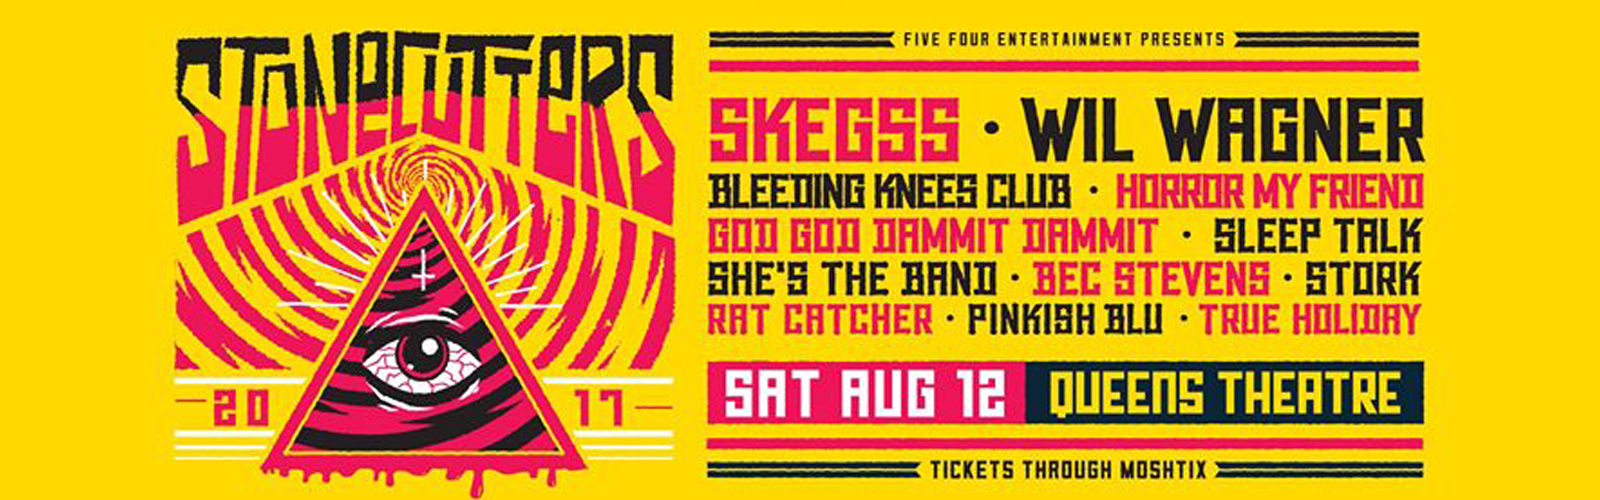 STONECUTTERS FESTIVAL -